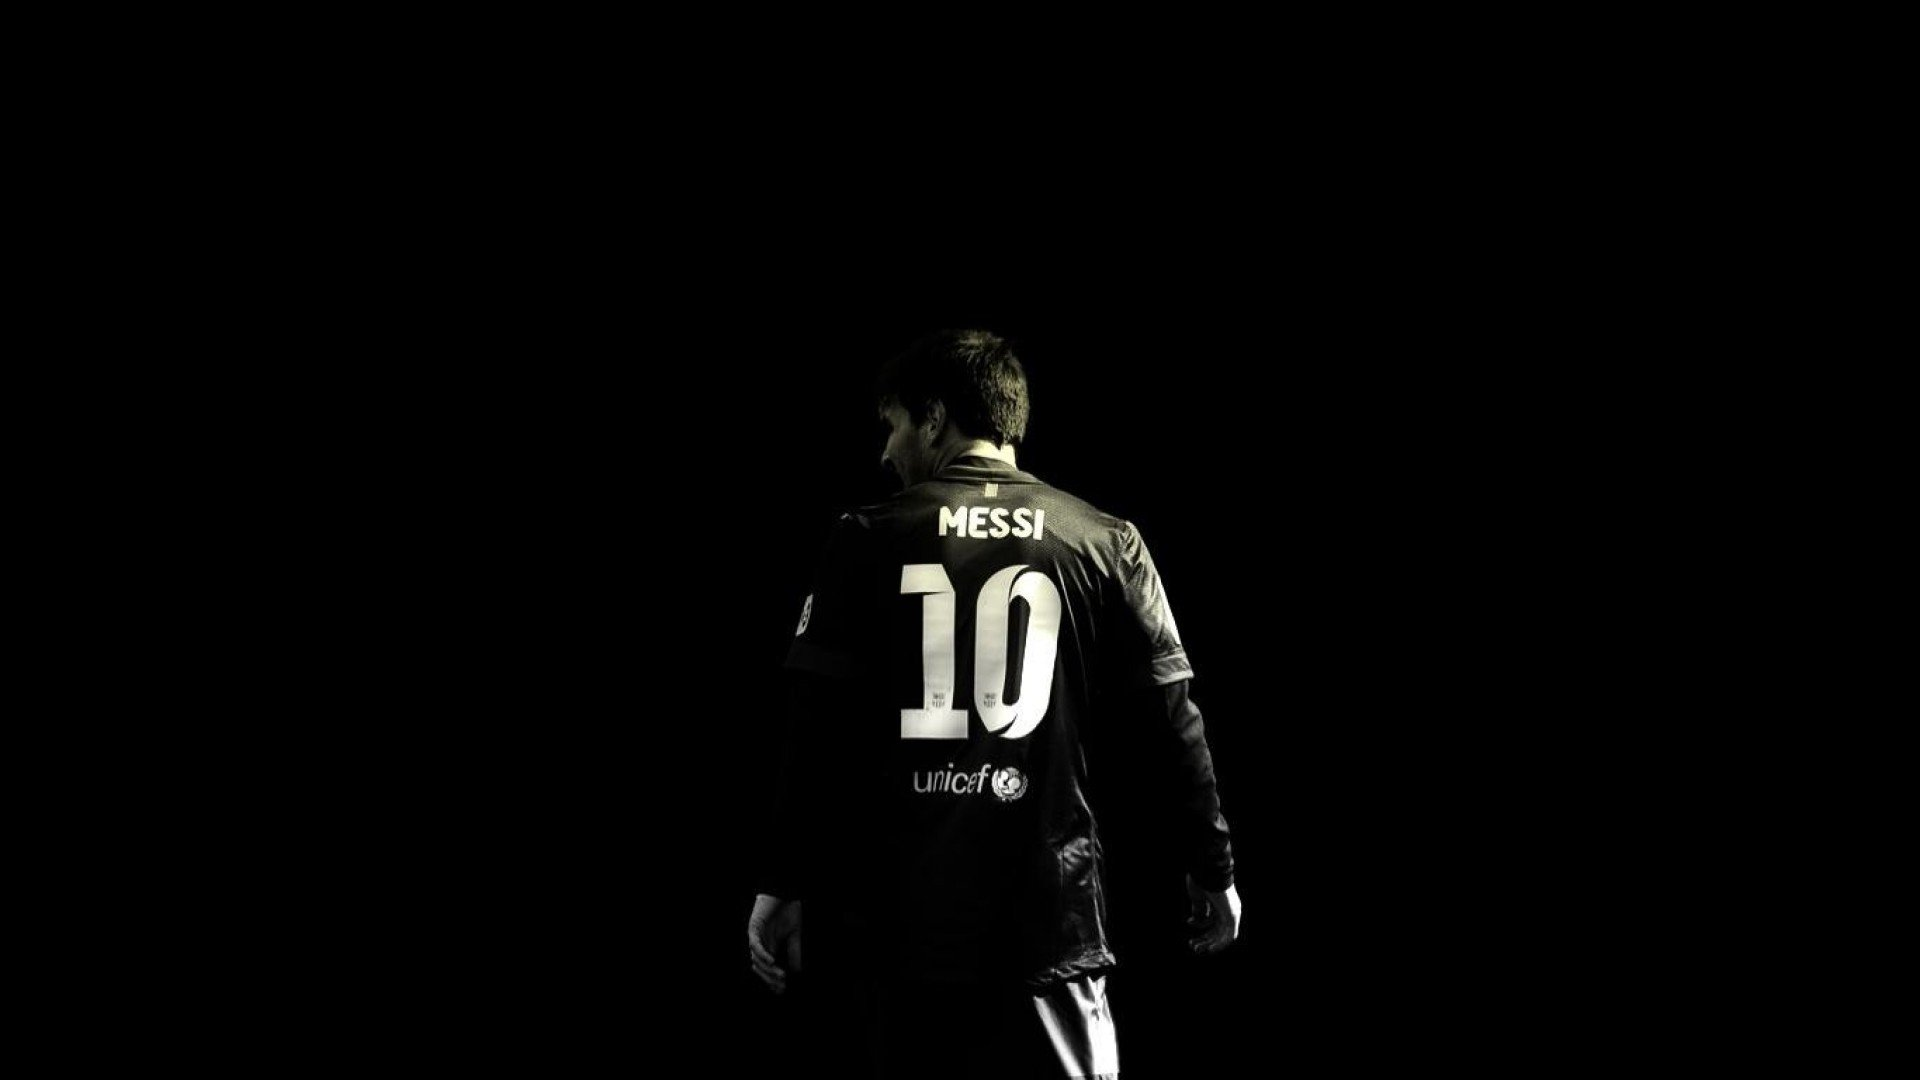 Lionel messi hd wallpapers 1080p wallpaper 1920x1080 582725 lionel messi hd wallpapers 1080p wallpaper 1920x1080 582725 wallpaperup voltagebd Gallery